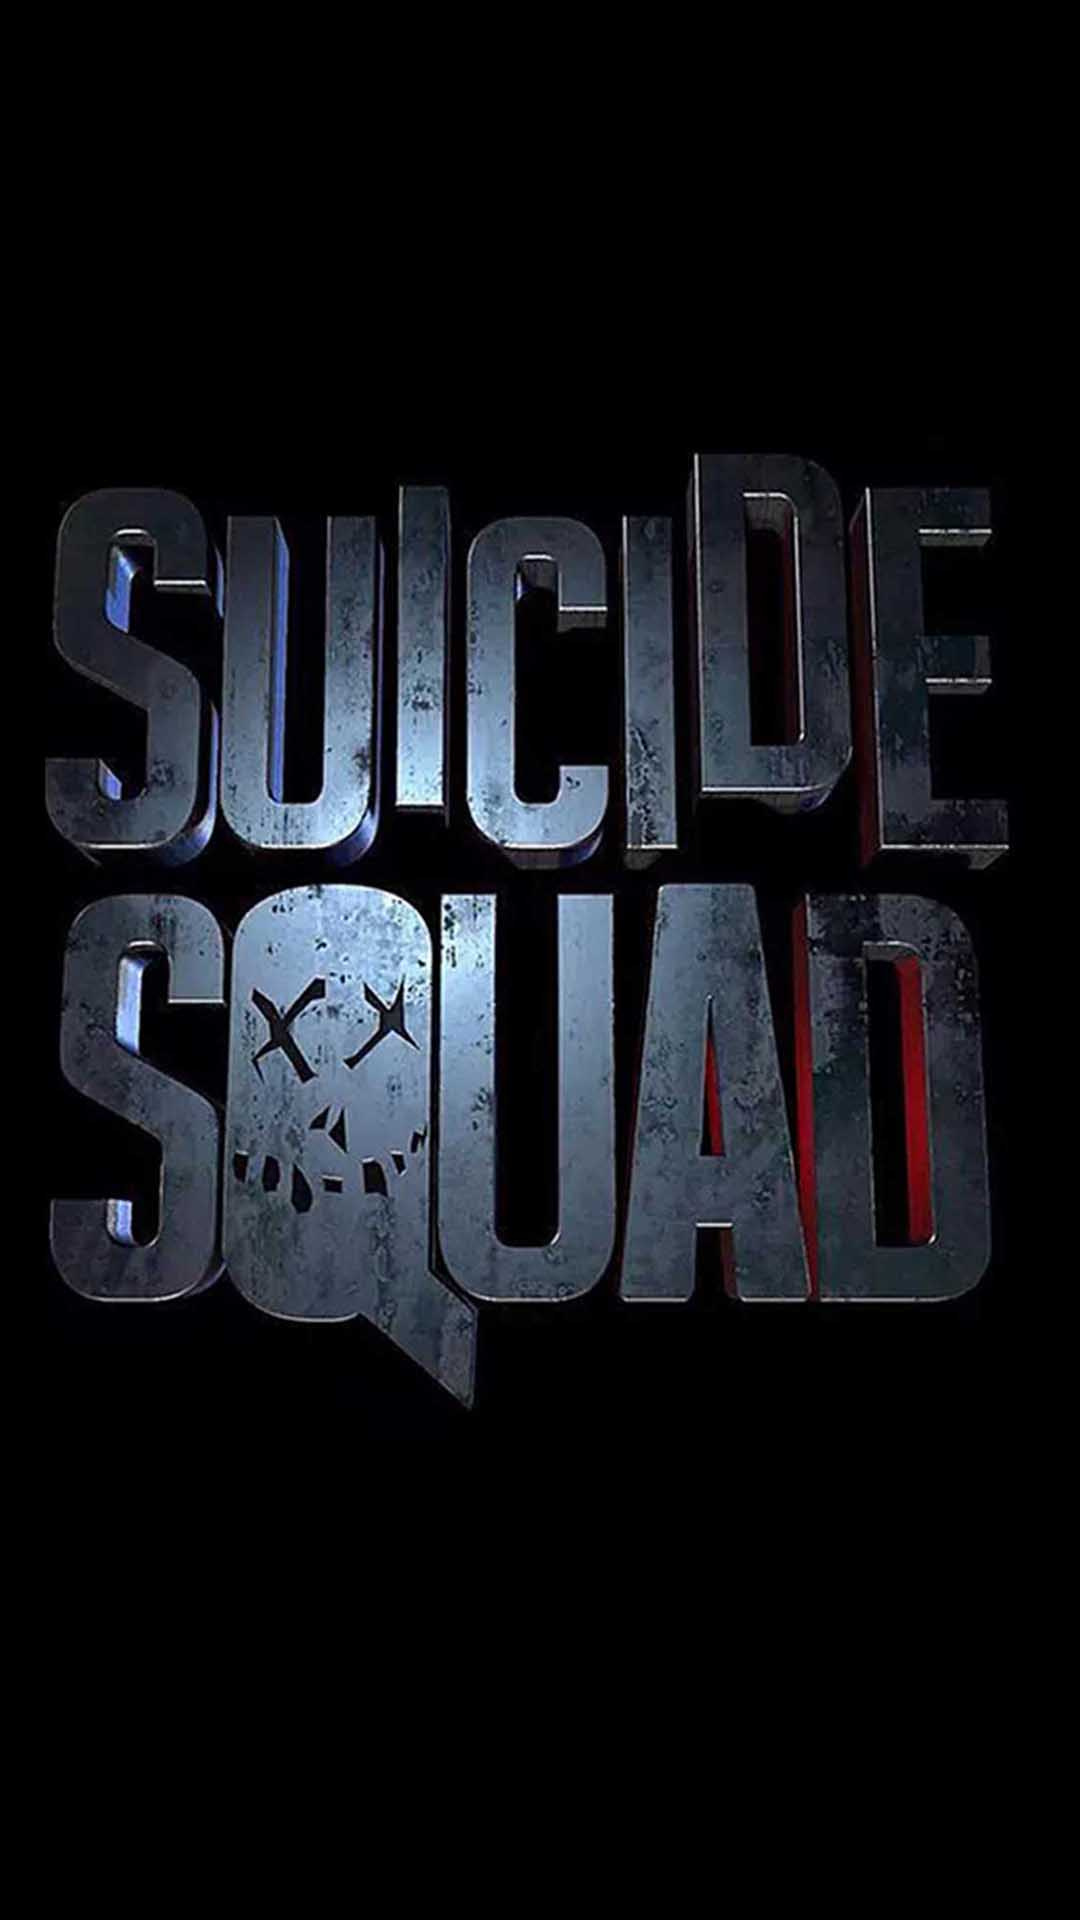 iPhone wallpaper suicide squad logo Les 3Wallpapers iPhone du jour (16/04/2018)